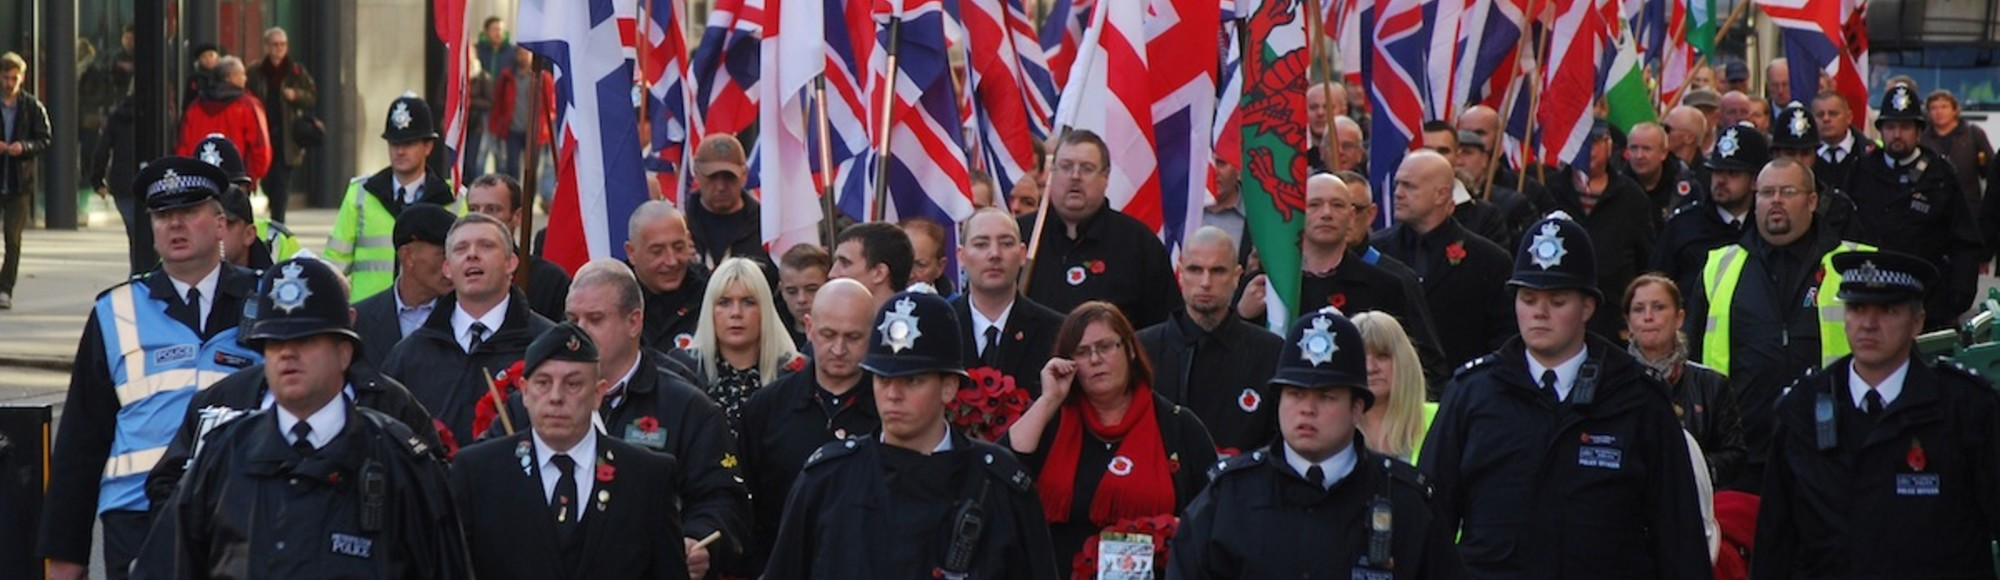 English Neo-Nazis Marched Through London on Remembrance Sunday